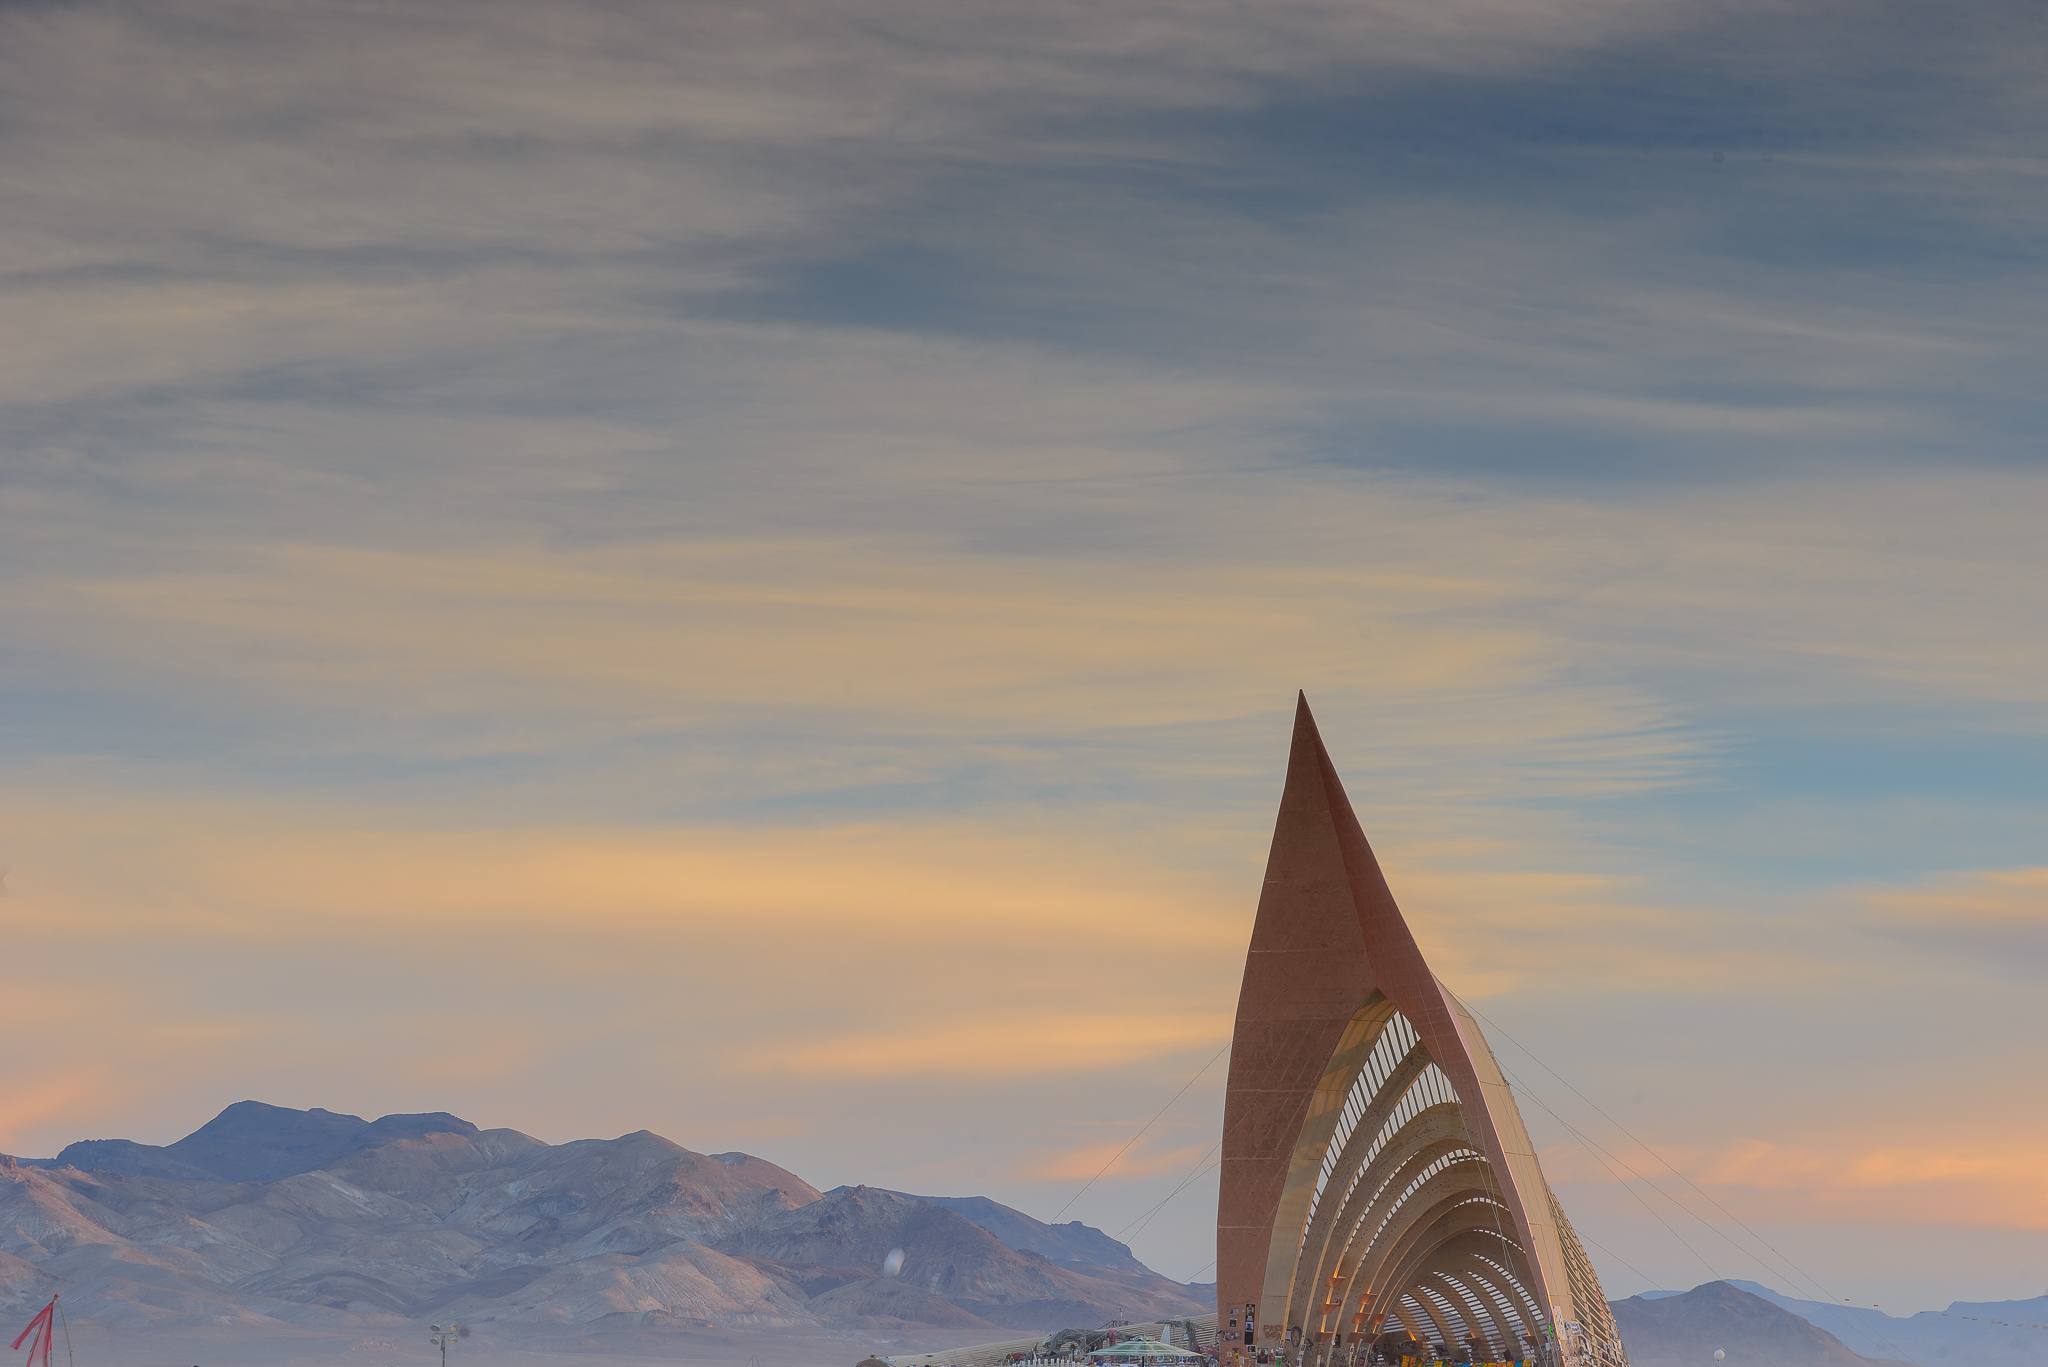 The Temple Of Promise against the softest of desert tones.